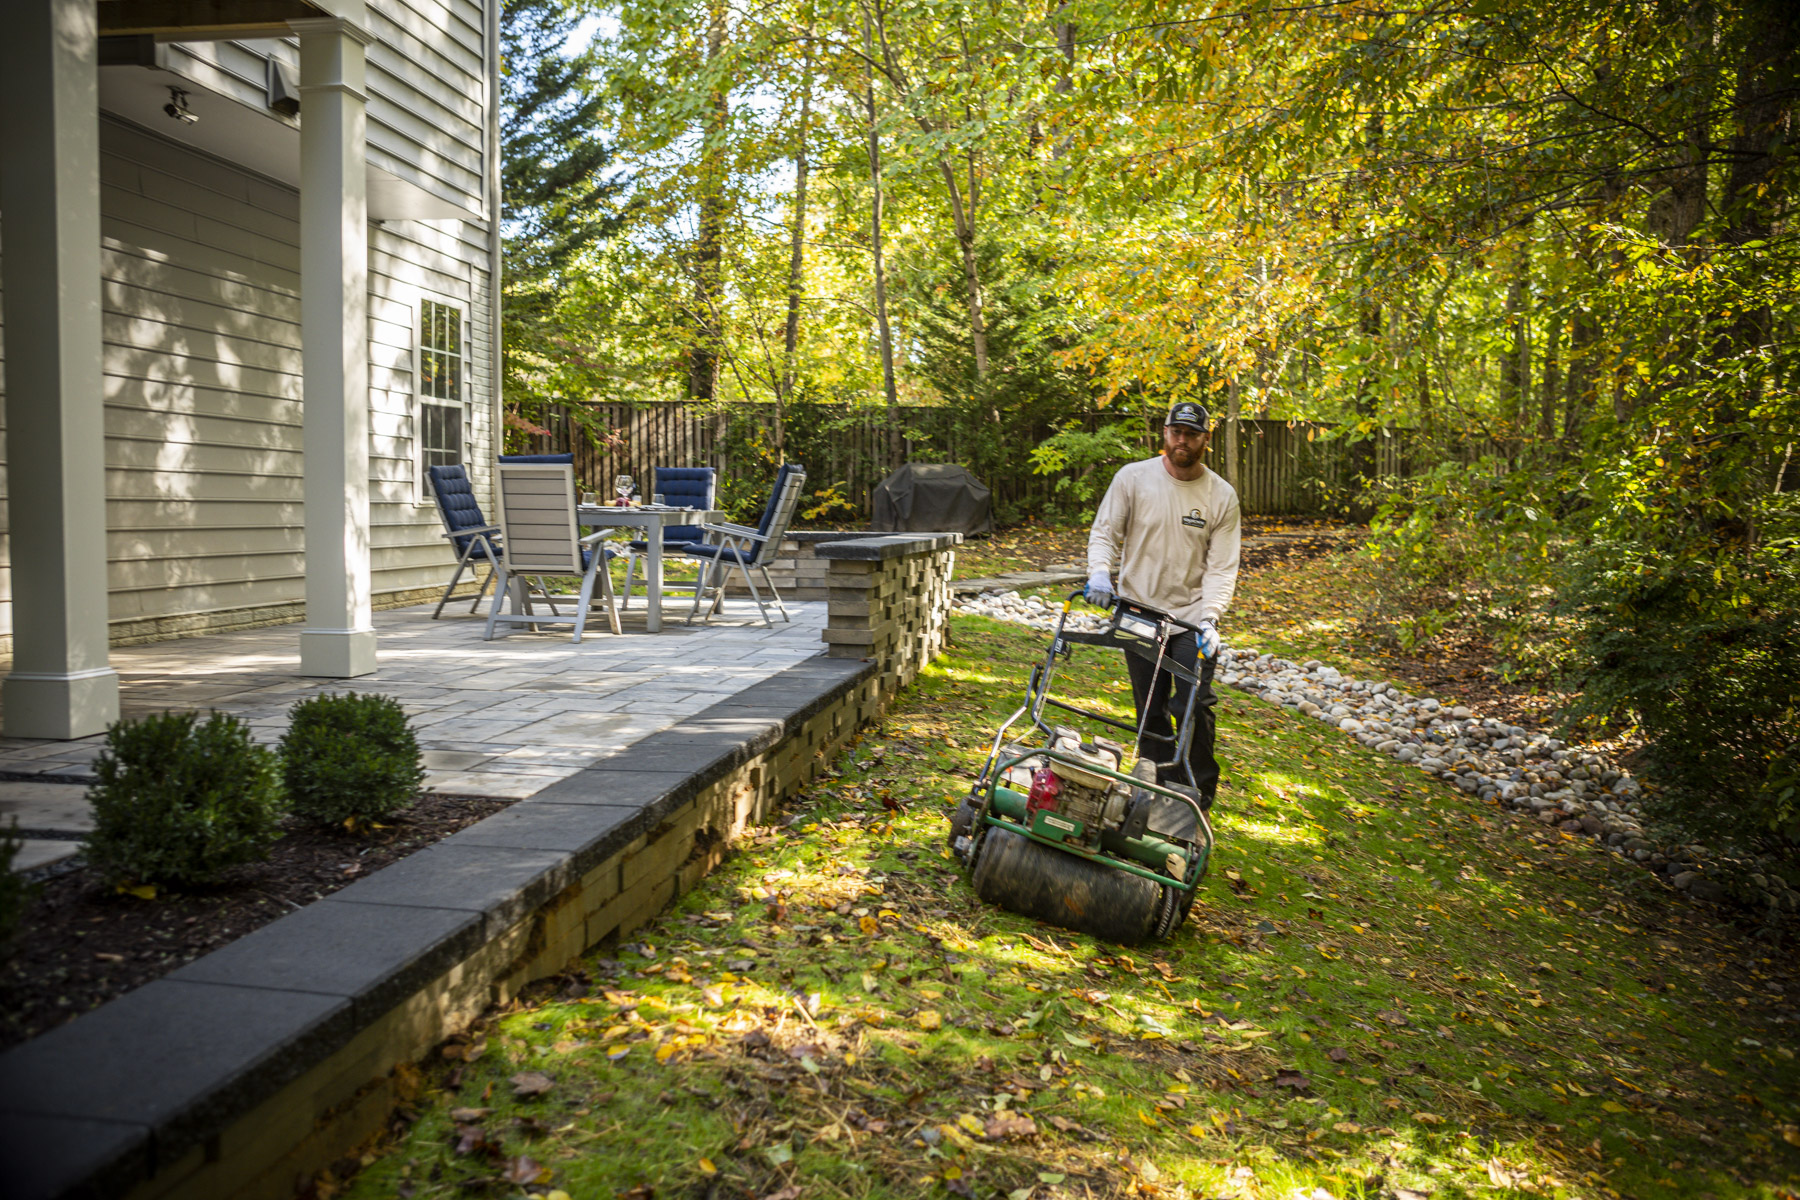 Easy & Convenient: 5 Things Your Lawn Care or Landscaping Service Should Be Doing